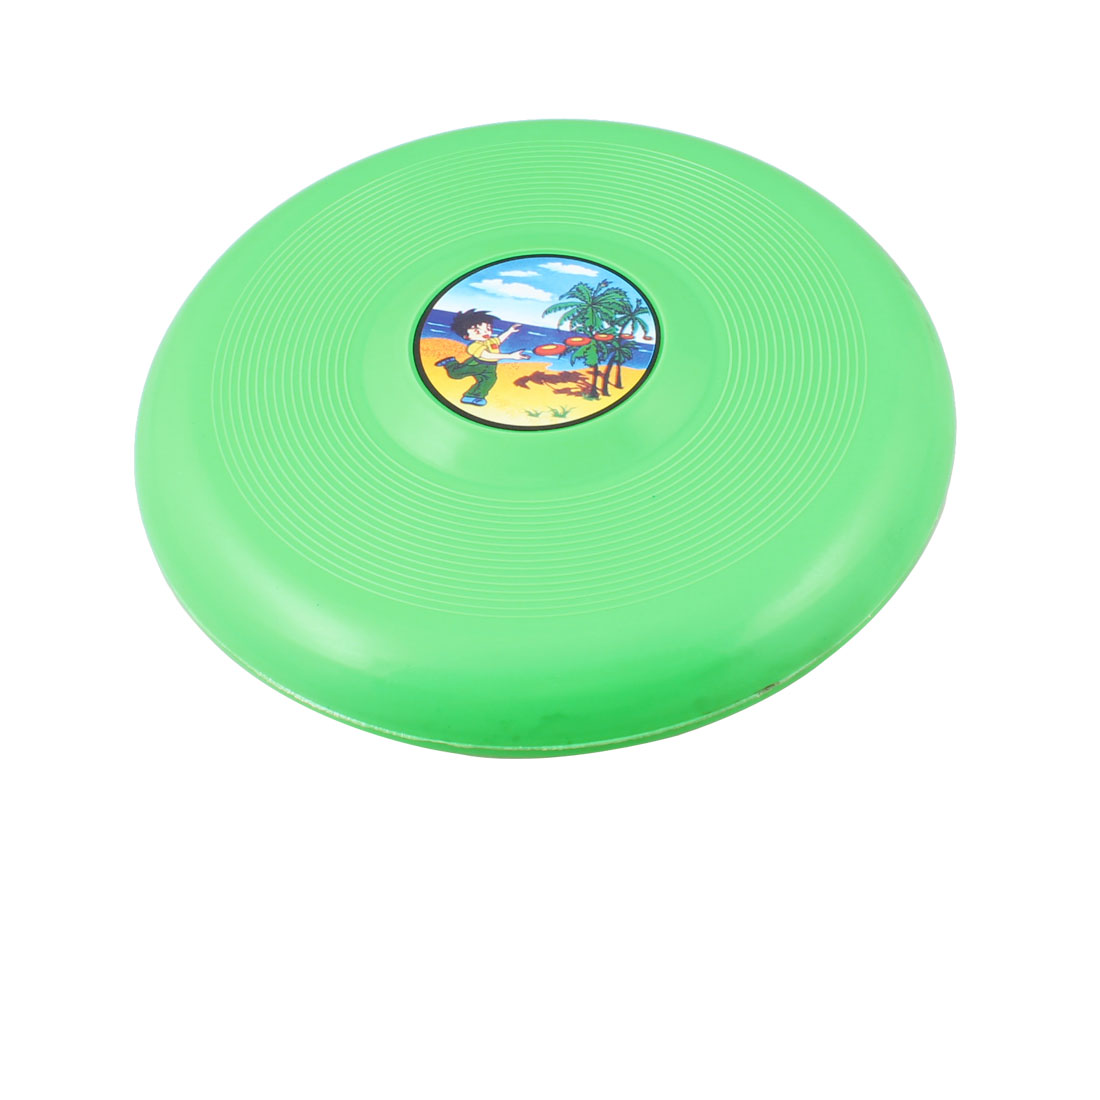 "Child Green Plastic 7.3"" Diameter Flying Round Disc Frisbee Toy"